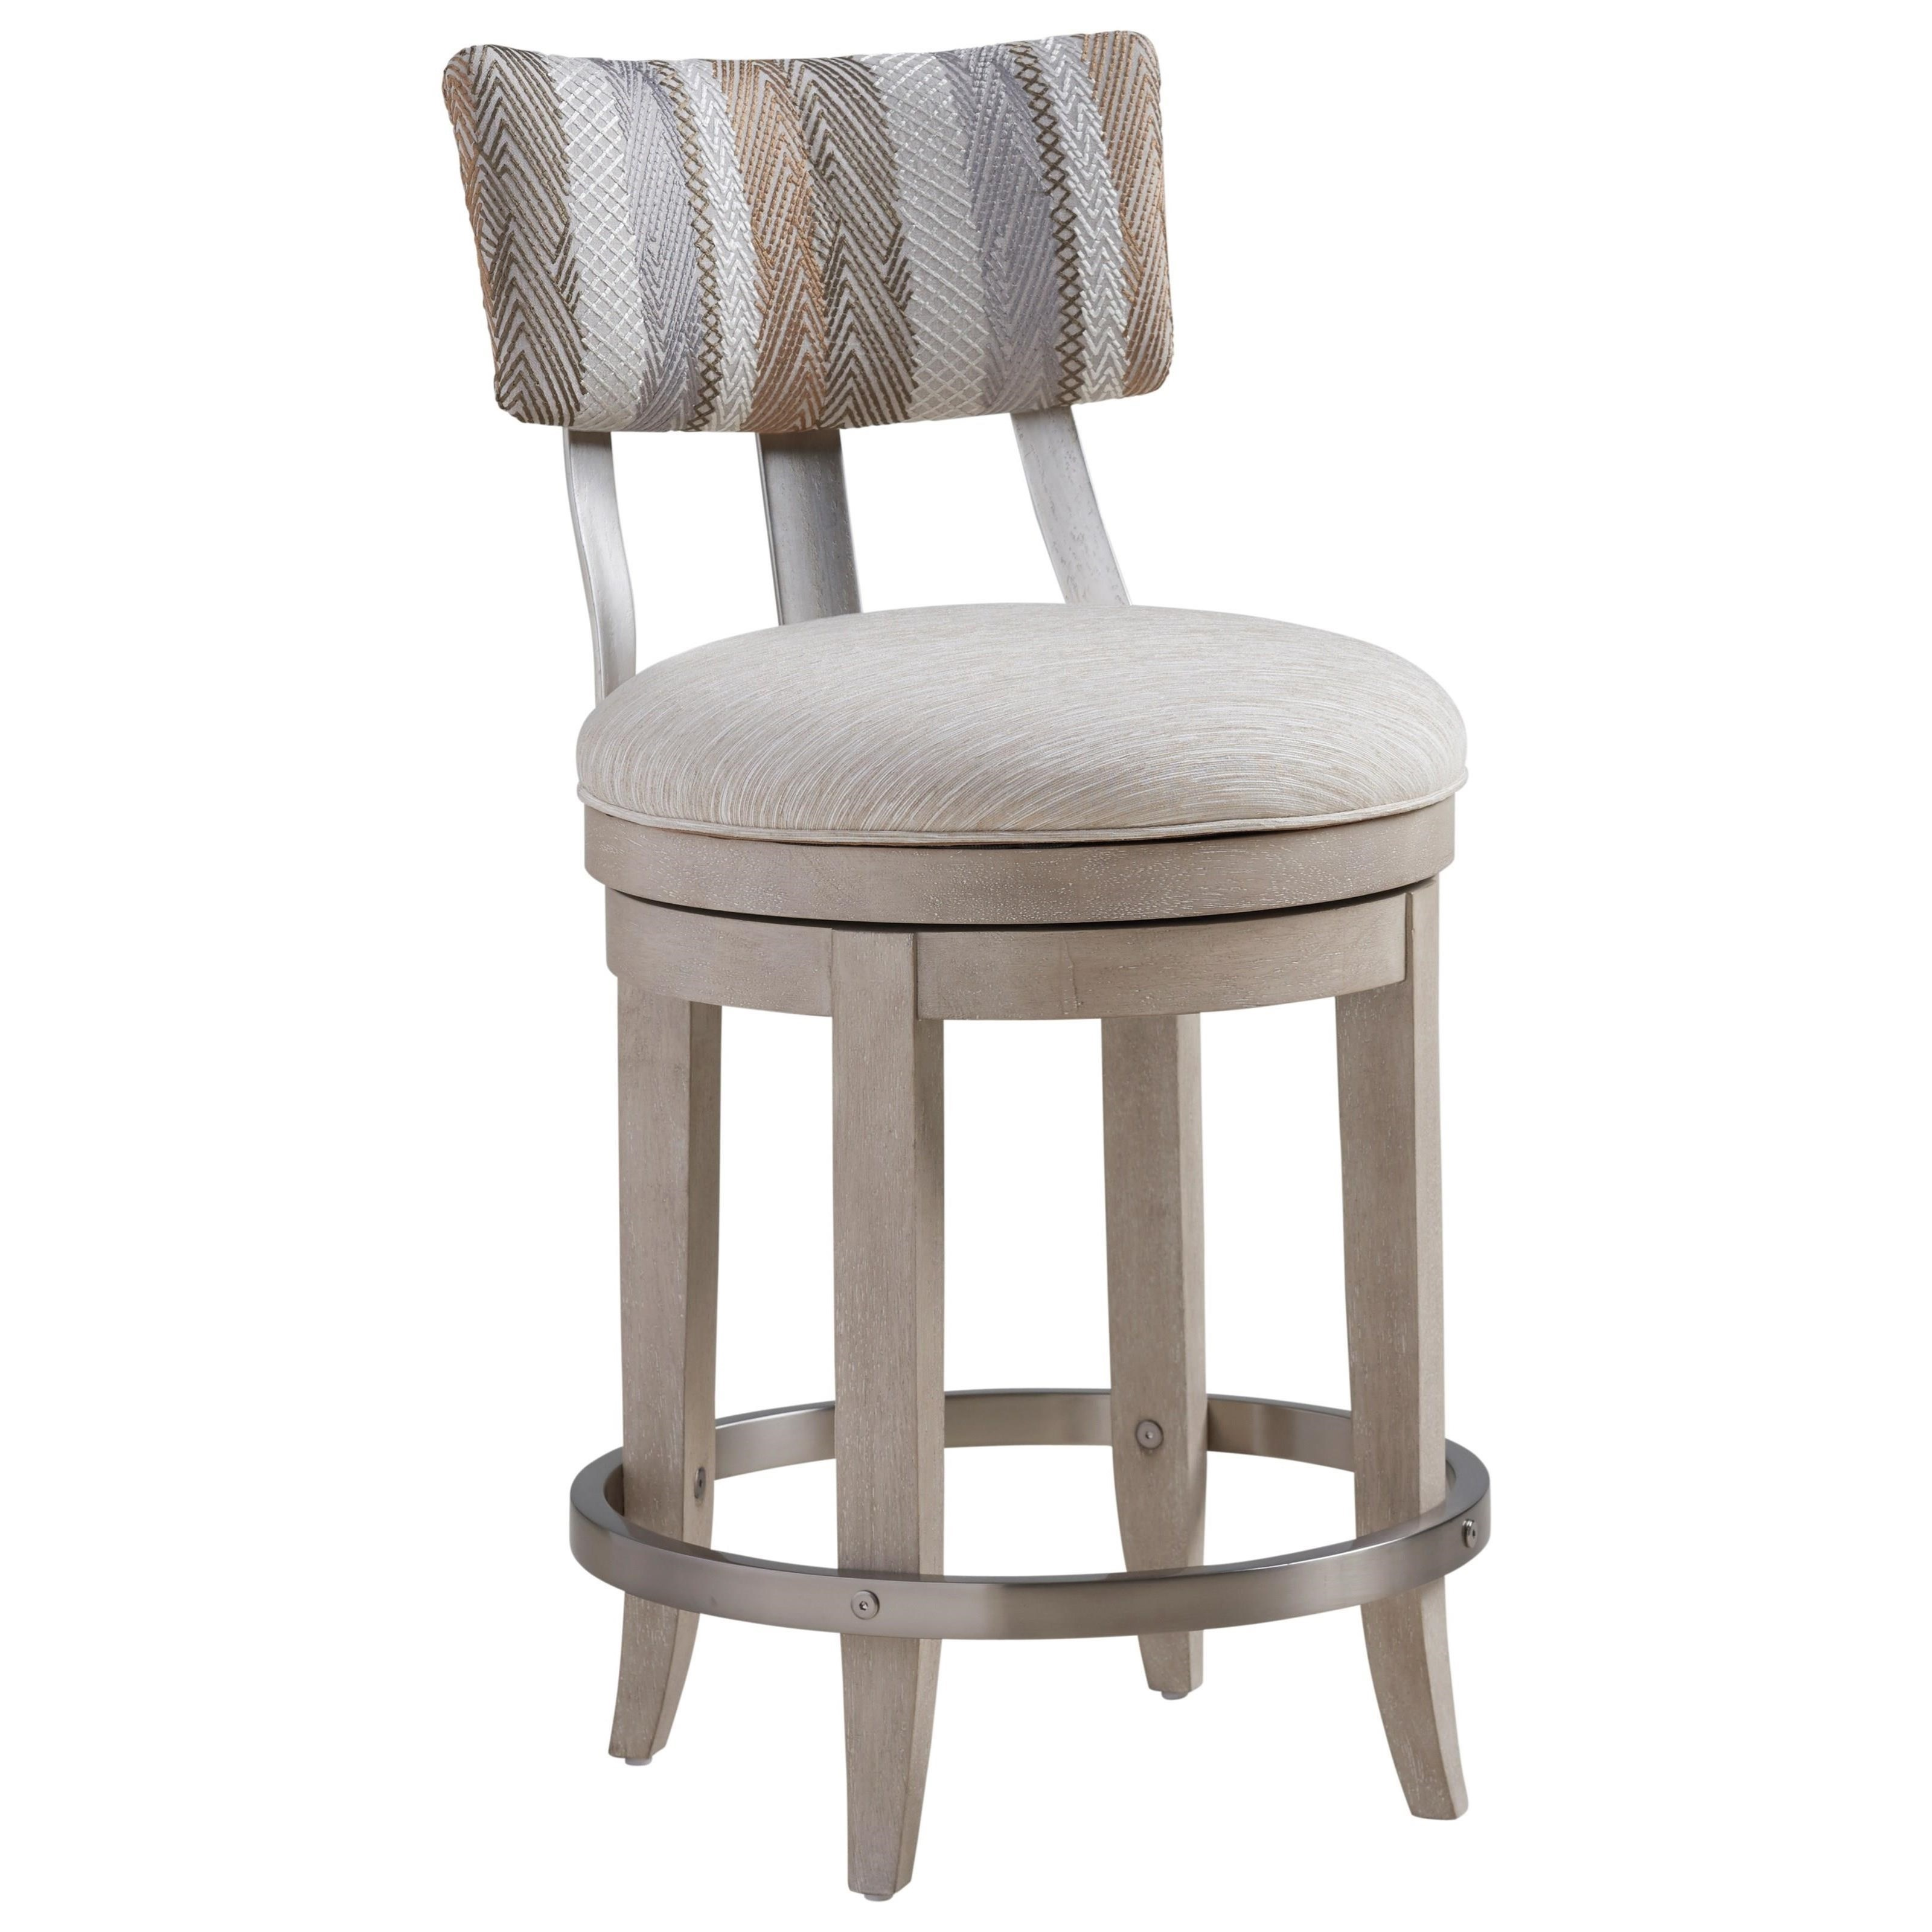 Malibu Cliffside Swivel Upholstered Counter Stool by Barclay Butera at Baer's Furniture